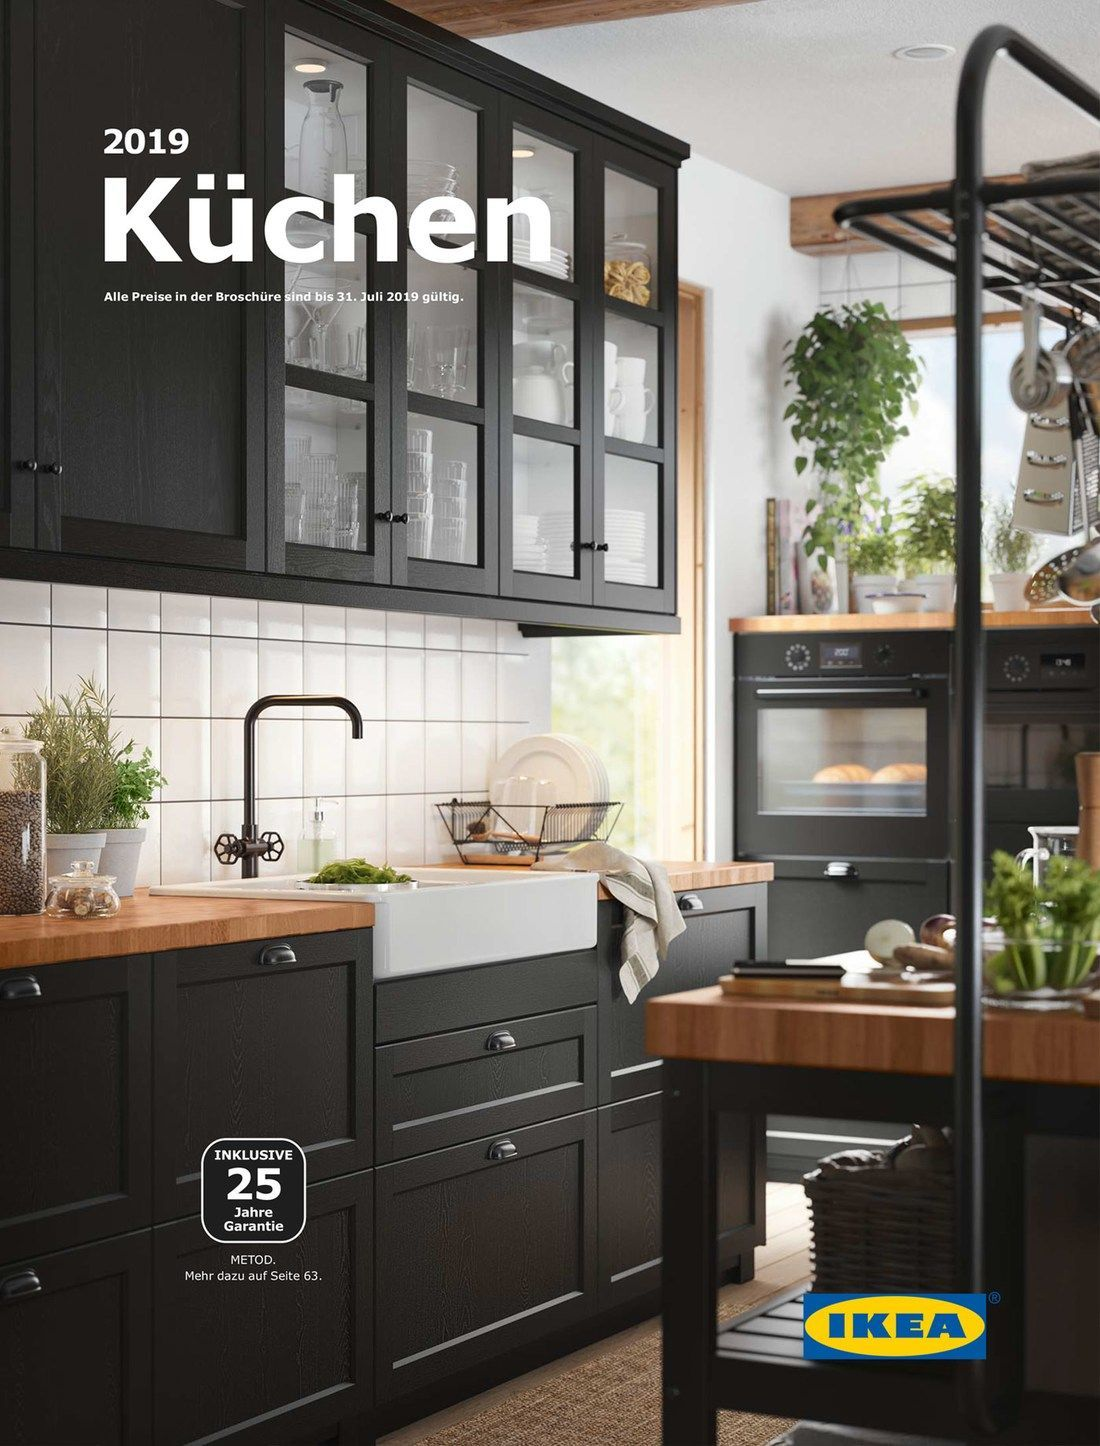 Katalog Für 2020 In 2020 Kitchen Cabinet Styles Ikea Kitchen Catalogue Black Ikea Kitchen